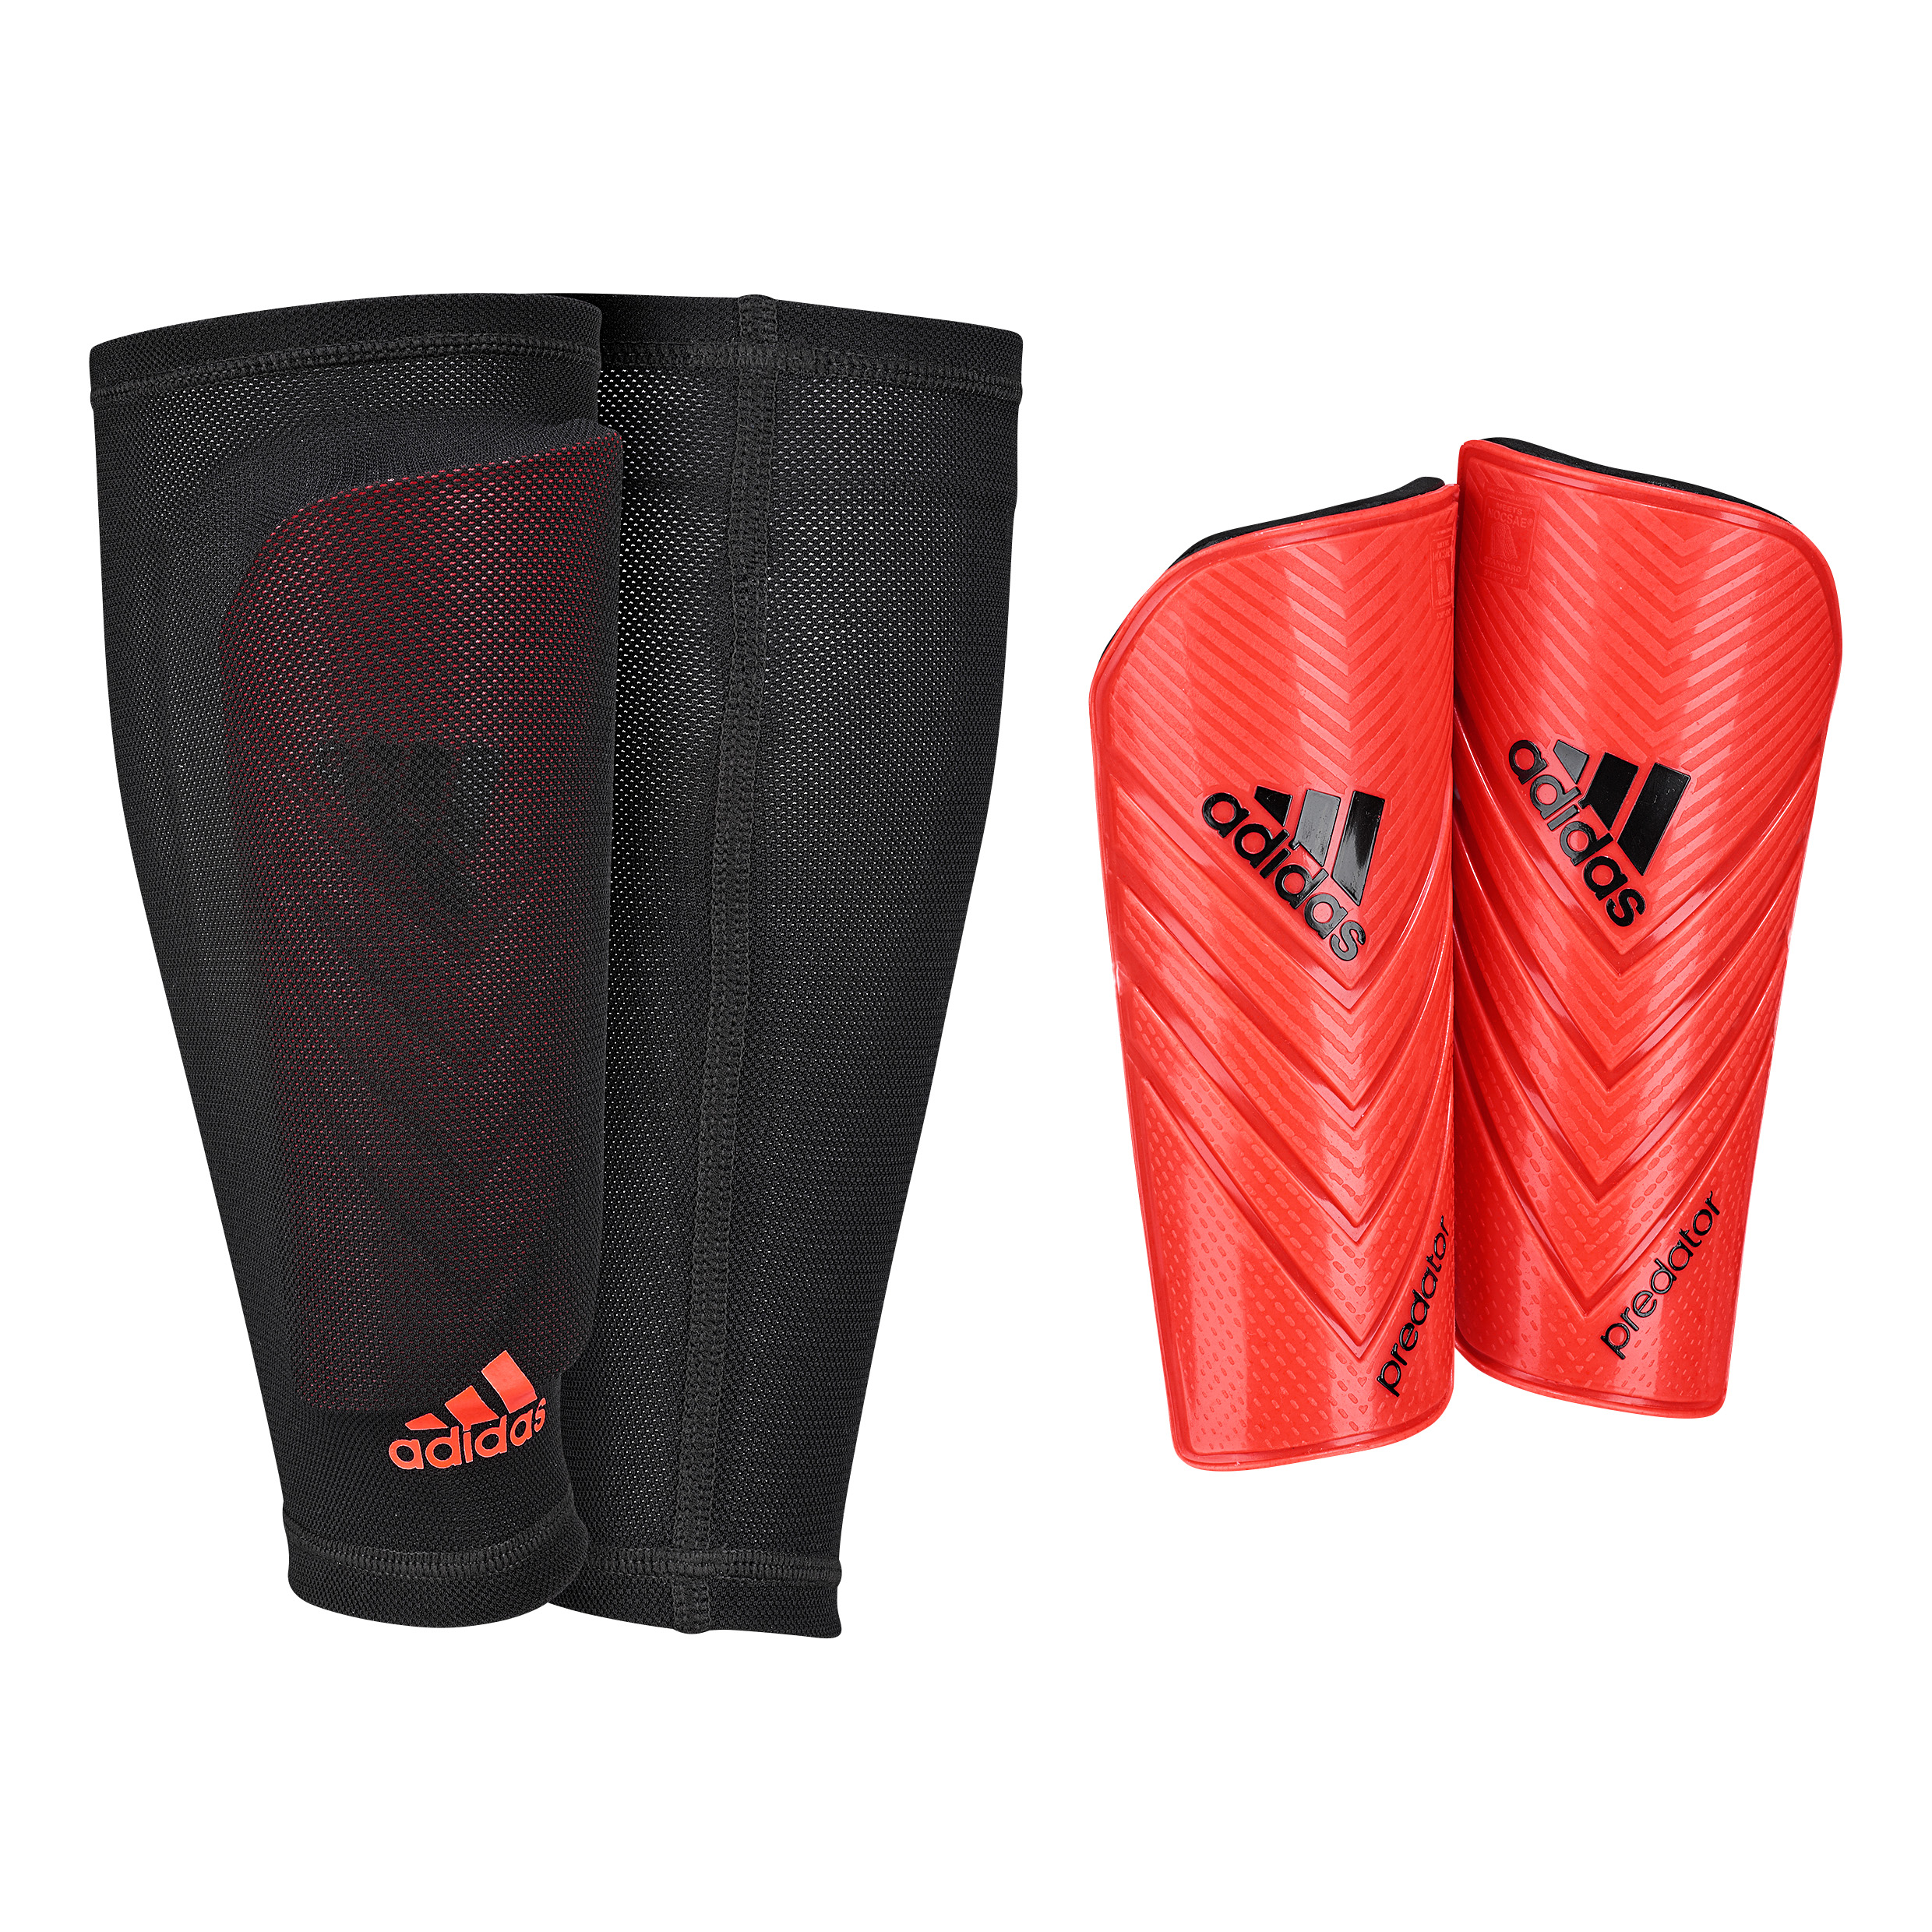 Adidas Predator Pro Lite Shinguards Orange